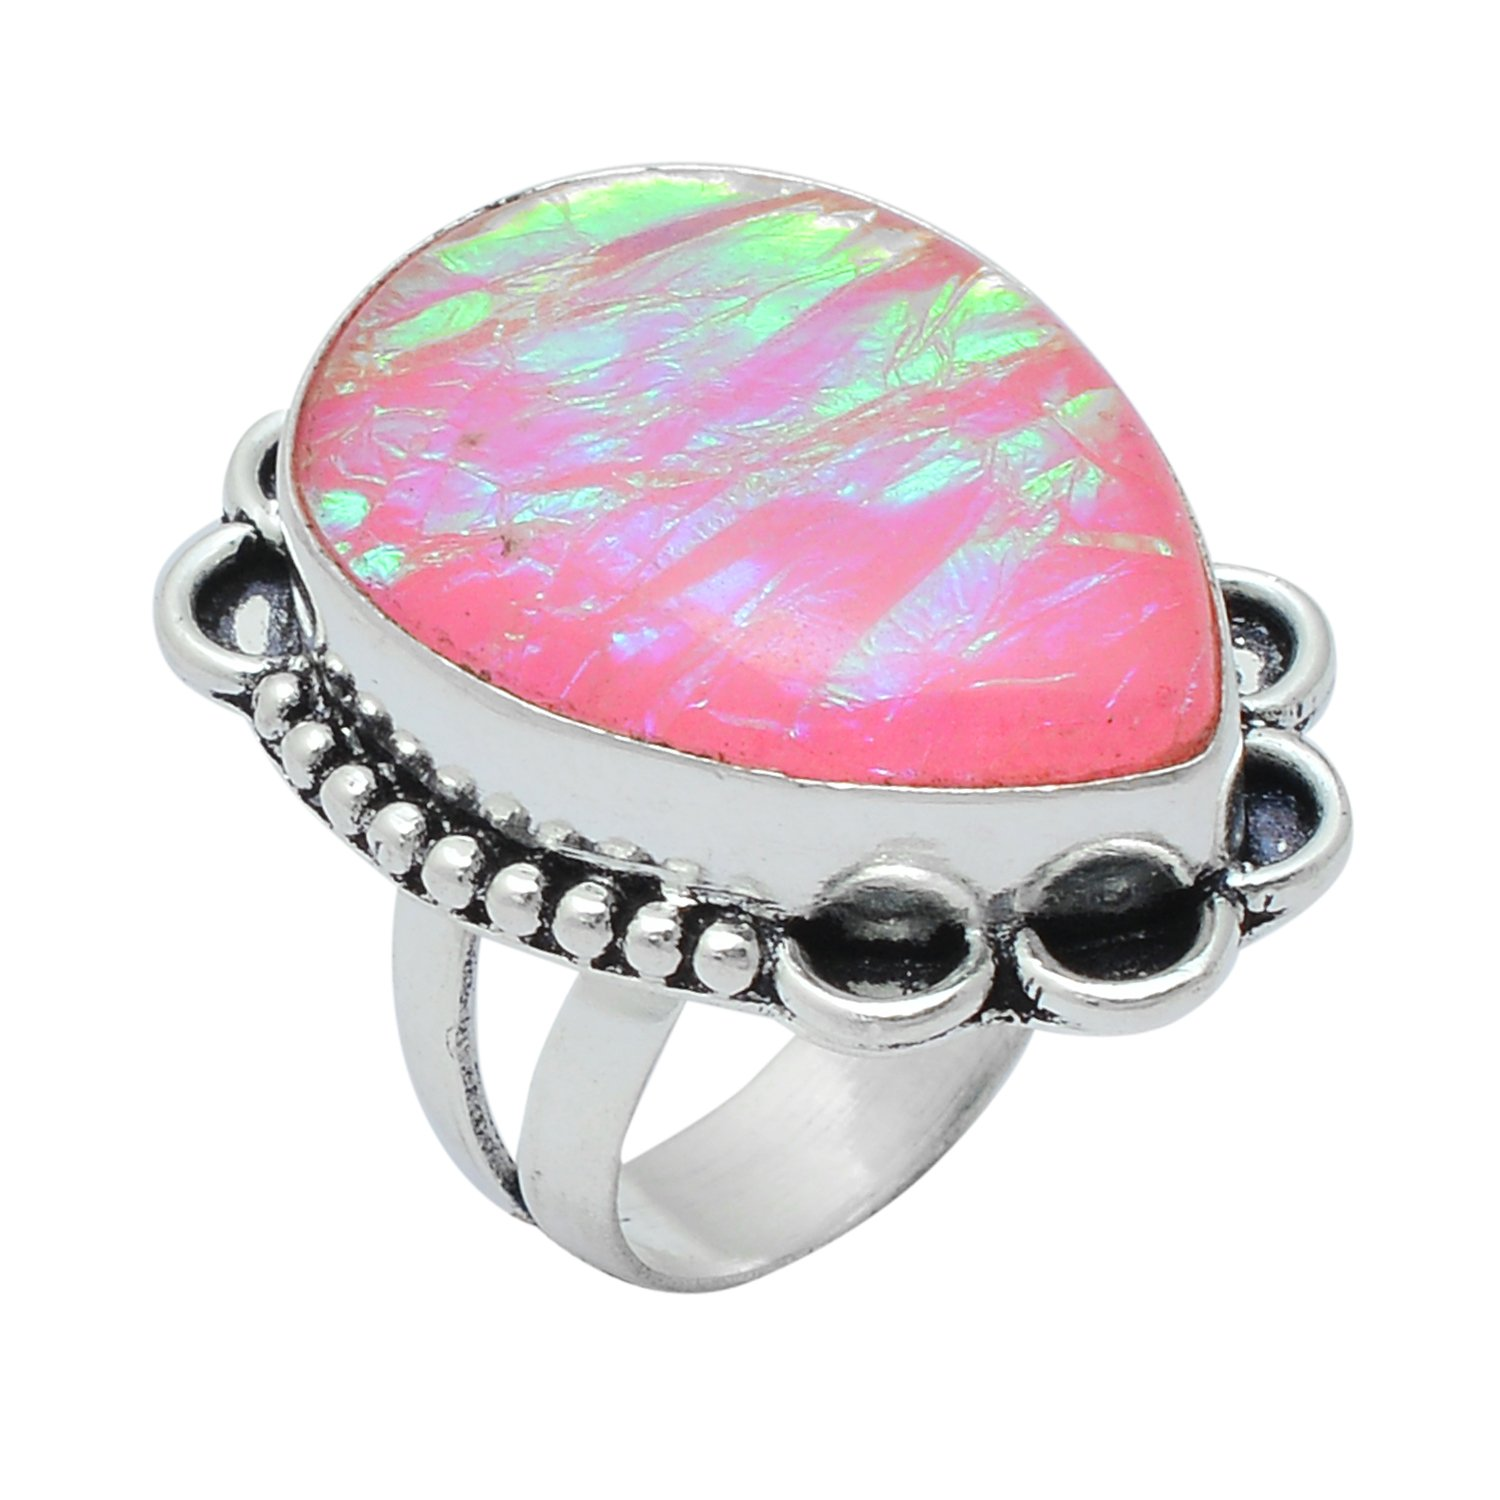 Handmade Pear Shape Dichroic Glass Gemstone Silver Plated Retro Ring Size US-6